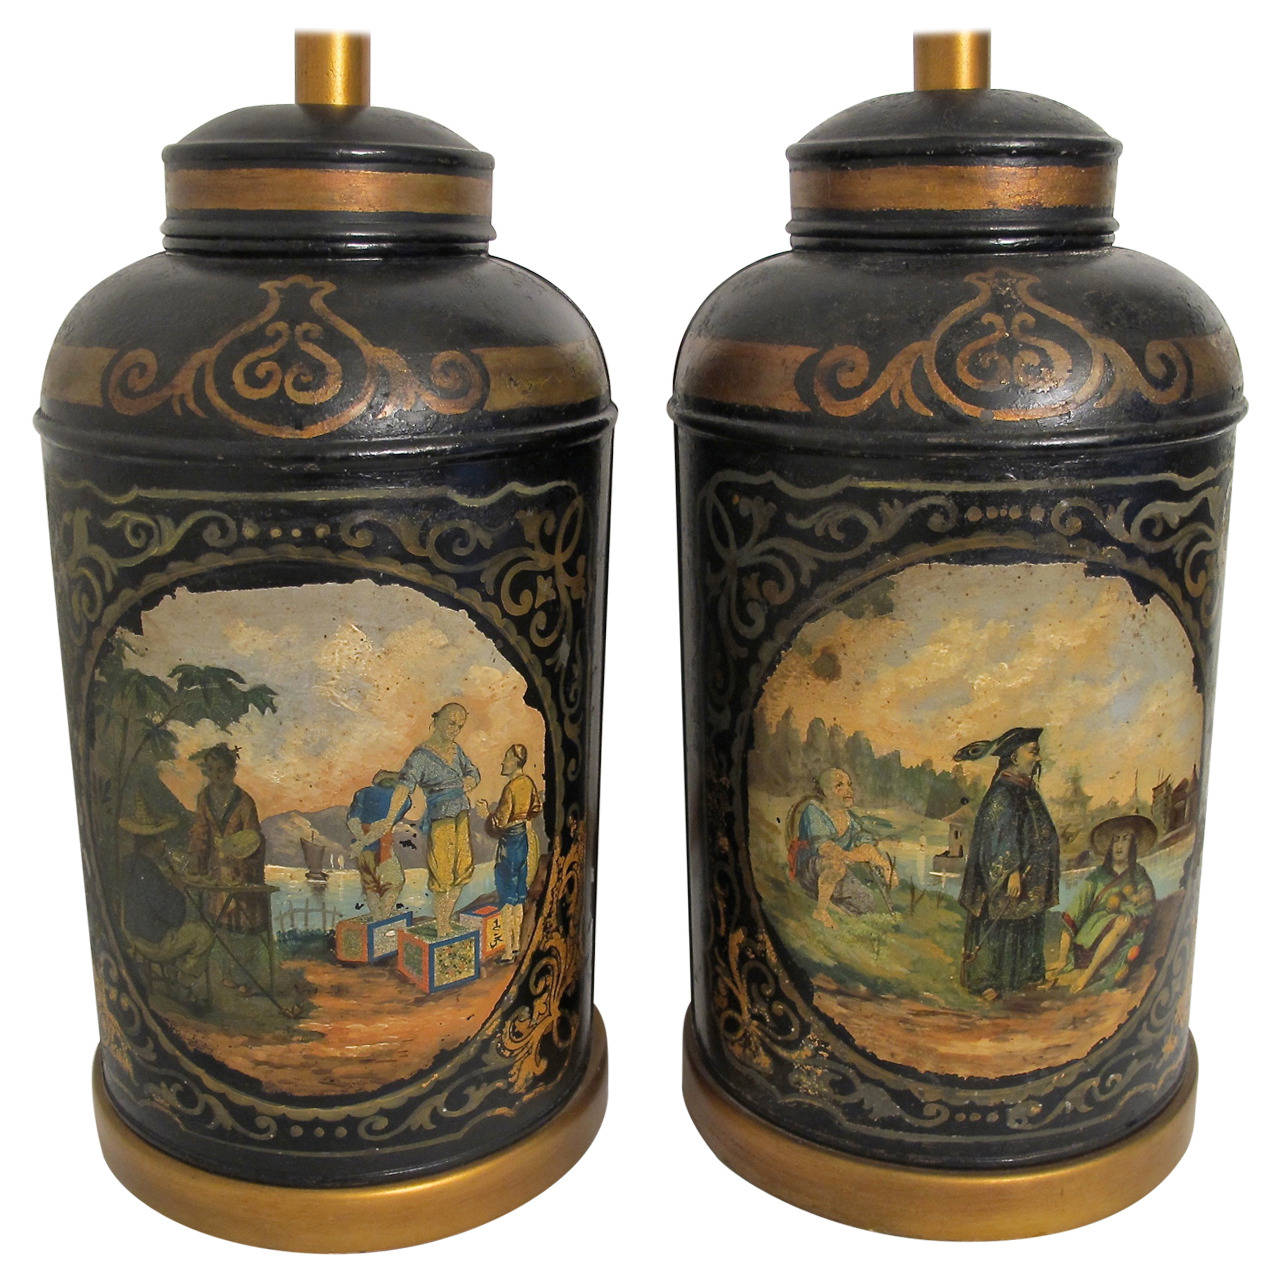 Antique Painted Tea Canister Lamps England 19th Century For Sale